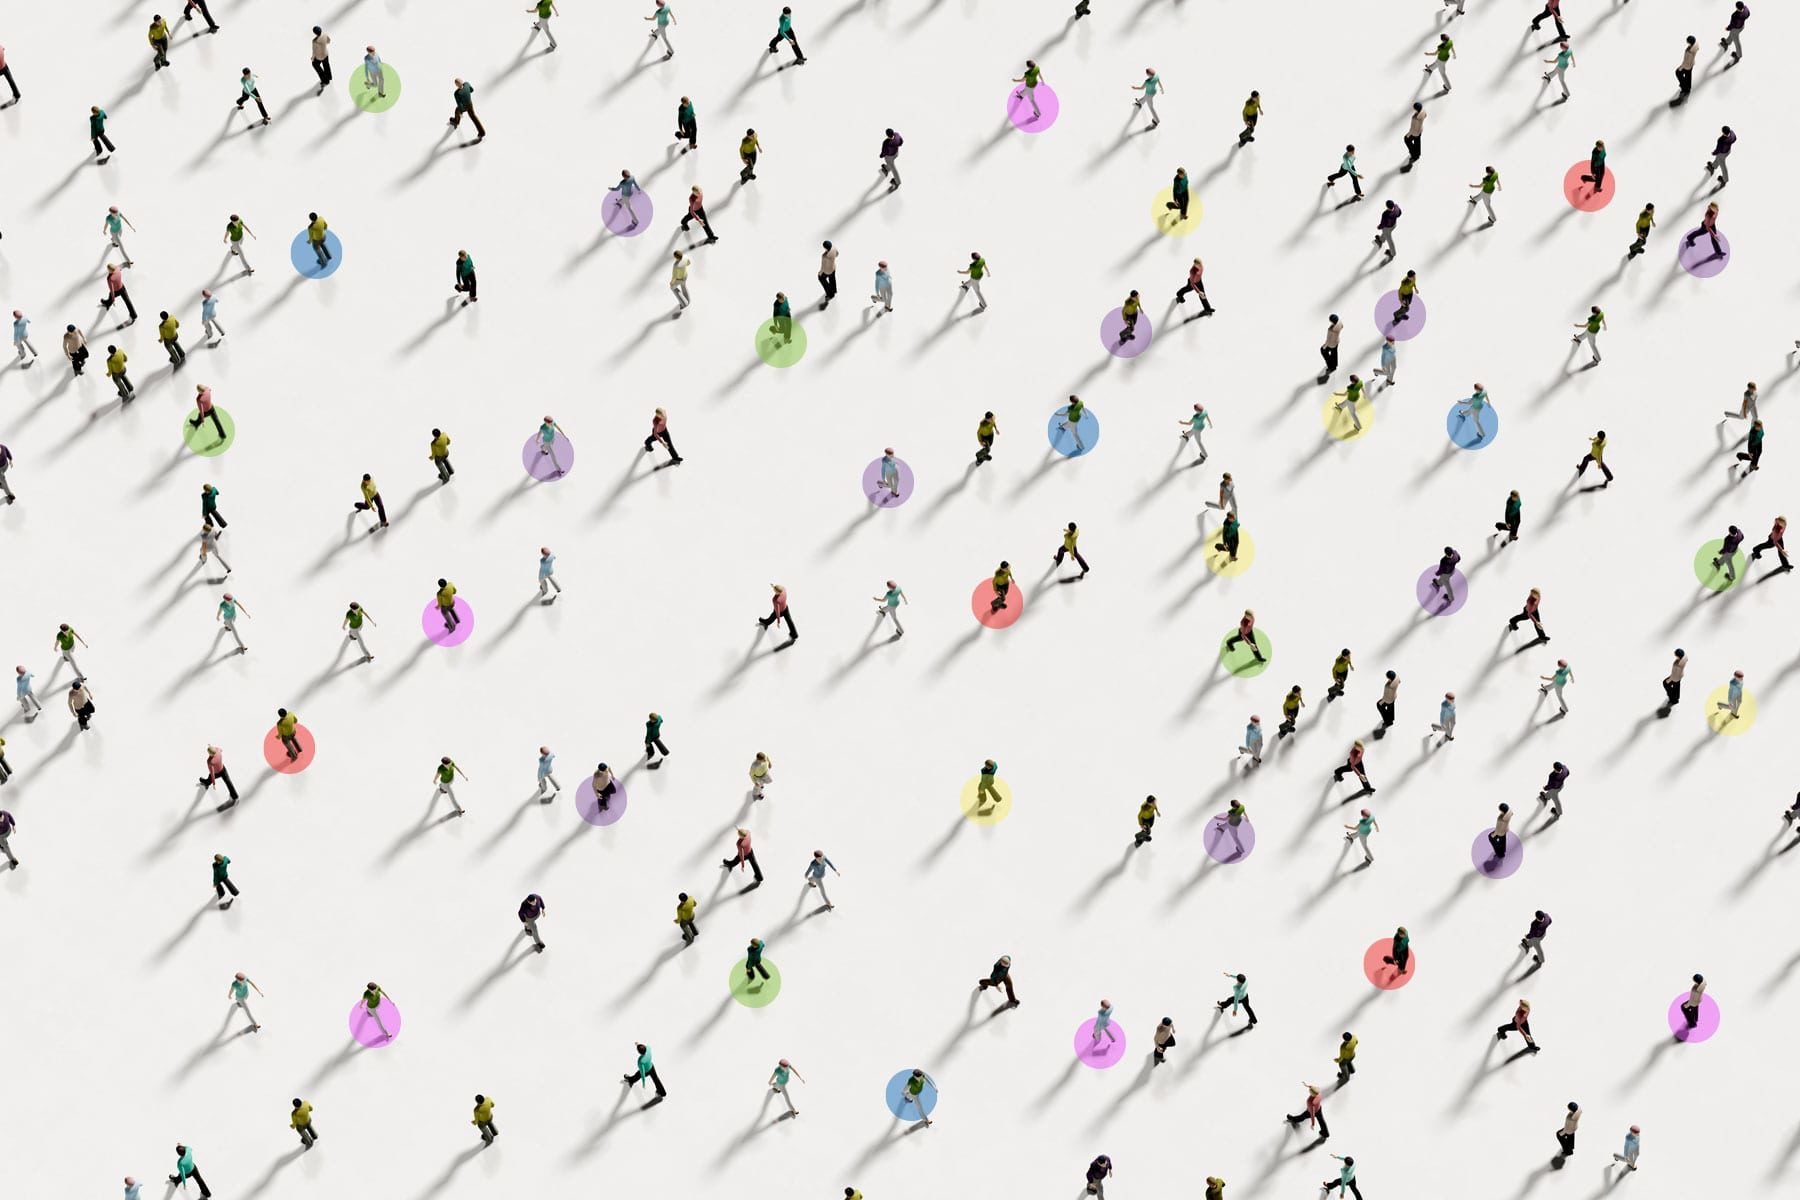 An illustration of people walking with colored dots on them.